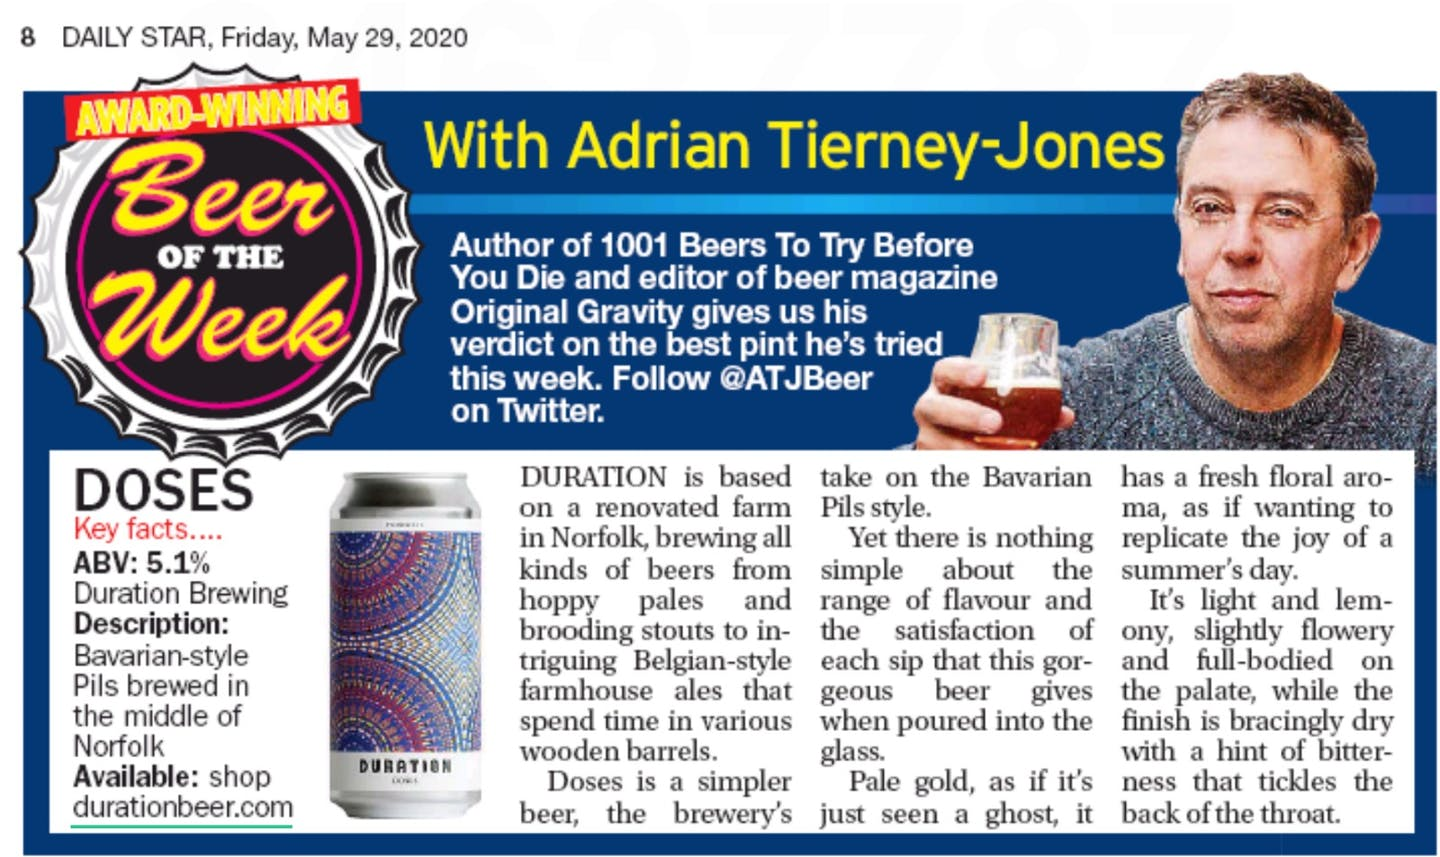 Daily Star - Beer of the Week with Adrian Tierney-Jones - Duration Doses Pilsner